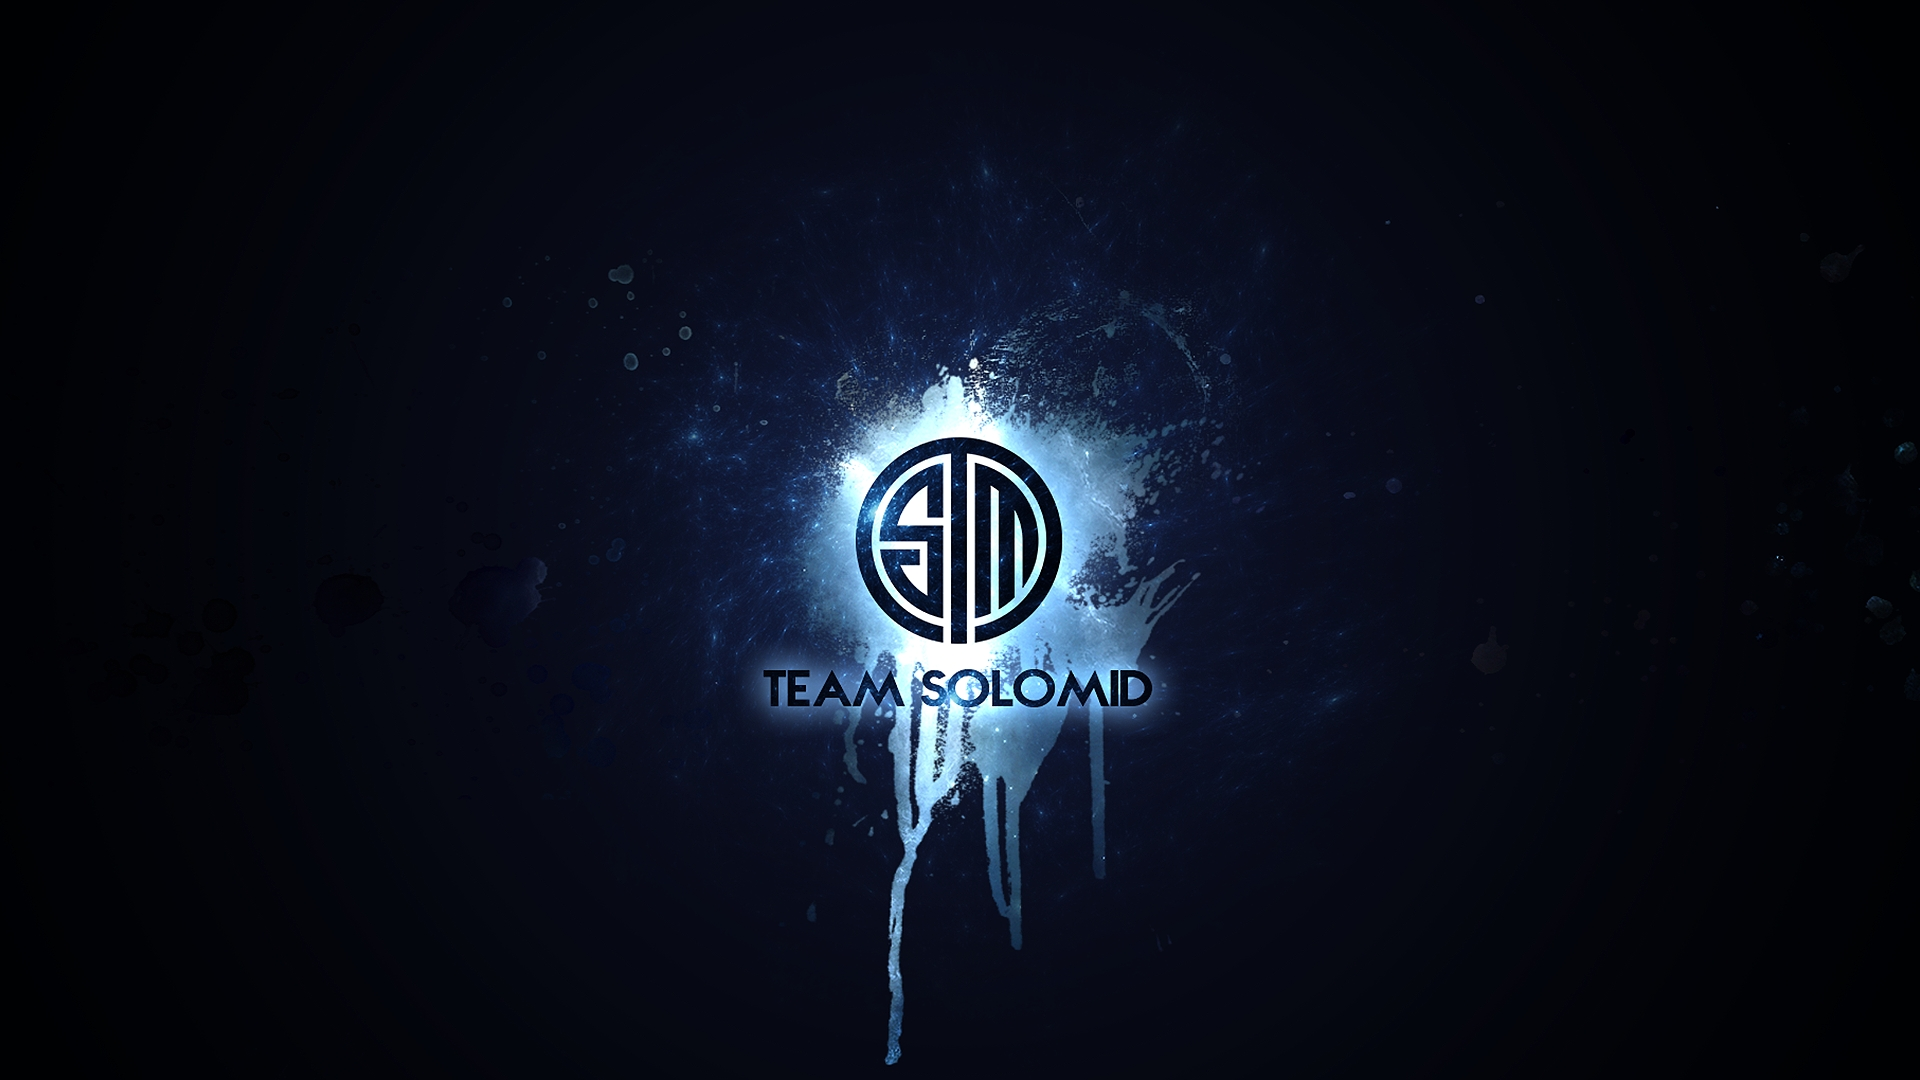 team solomid wallpapers - wallpaper cave